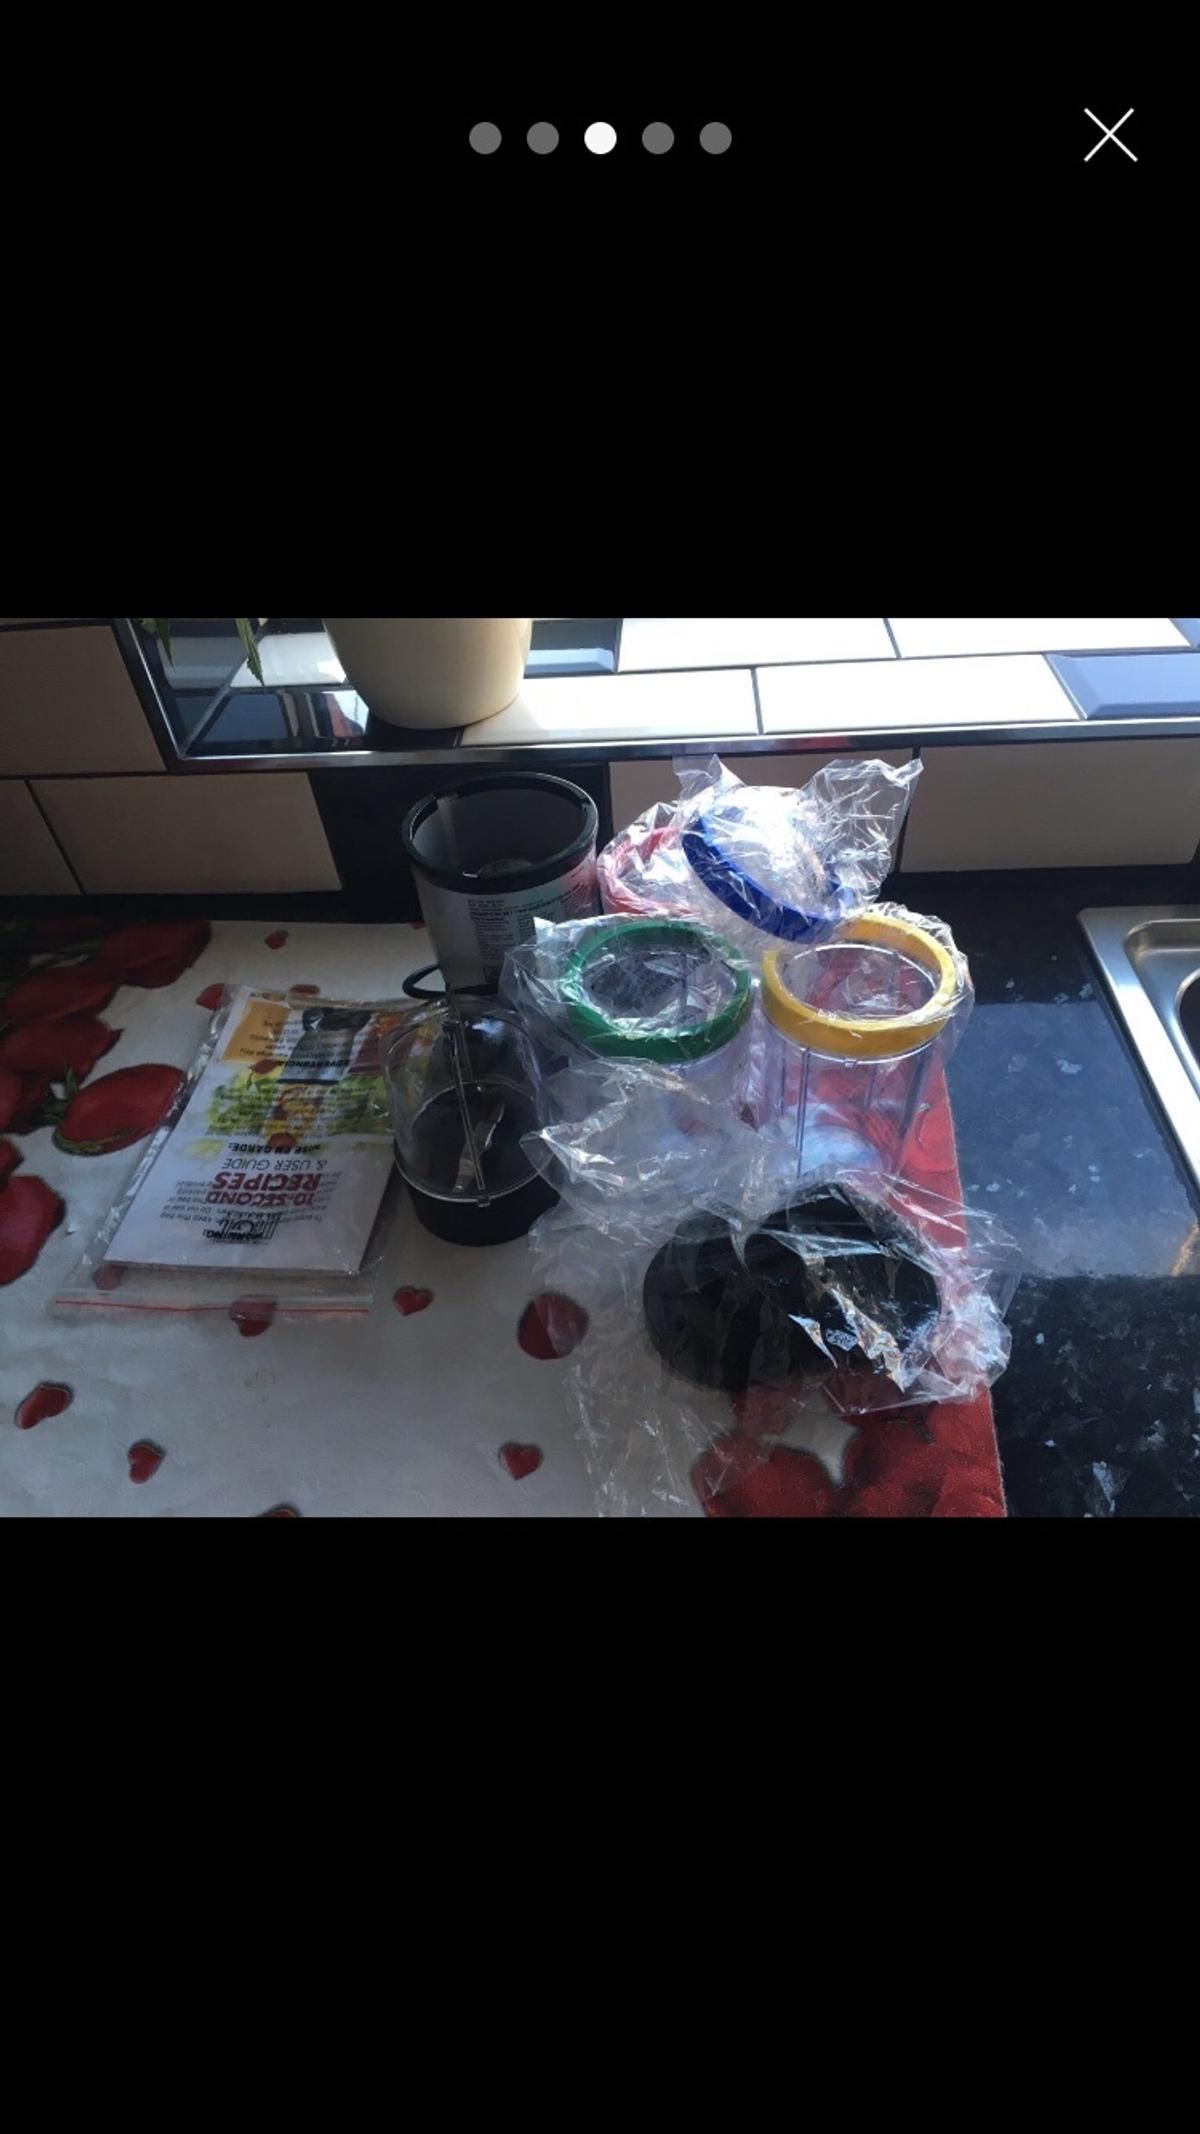 -LIKE NEW -Two blades that work -Blender has been used but the extras are still in original packaging never touched -No damage to blender except for a piece inside that came off but doesn't effect the performance of the blender -Works perfectly fine -Can do DELIVERY (not £14) or COLLECTION NO SPICE MIXER BLADE